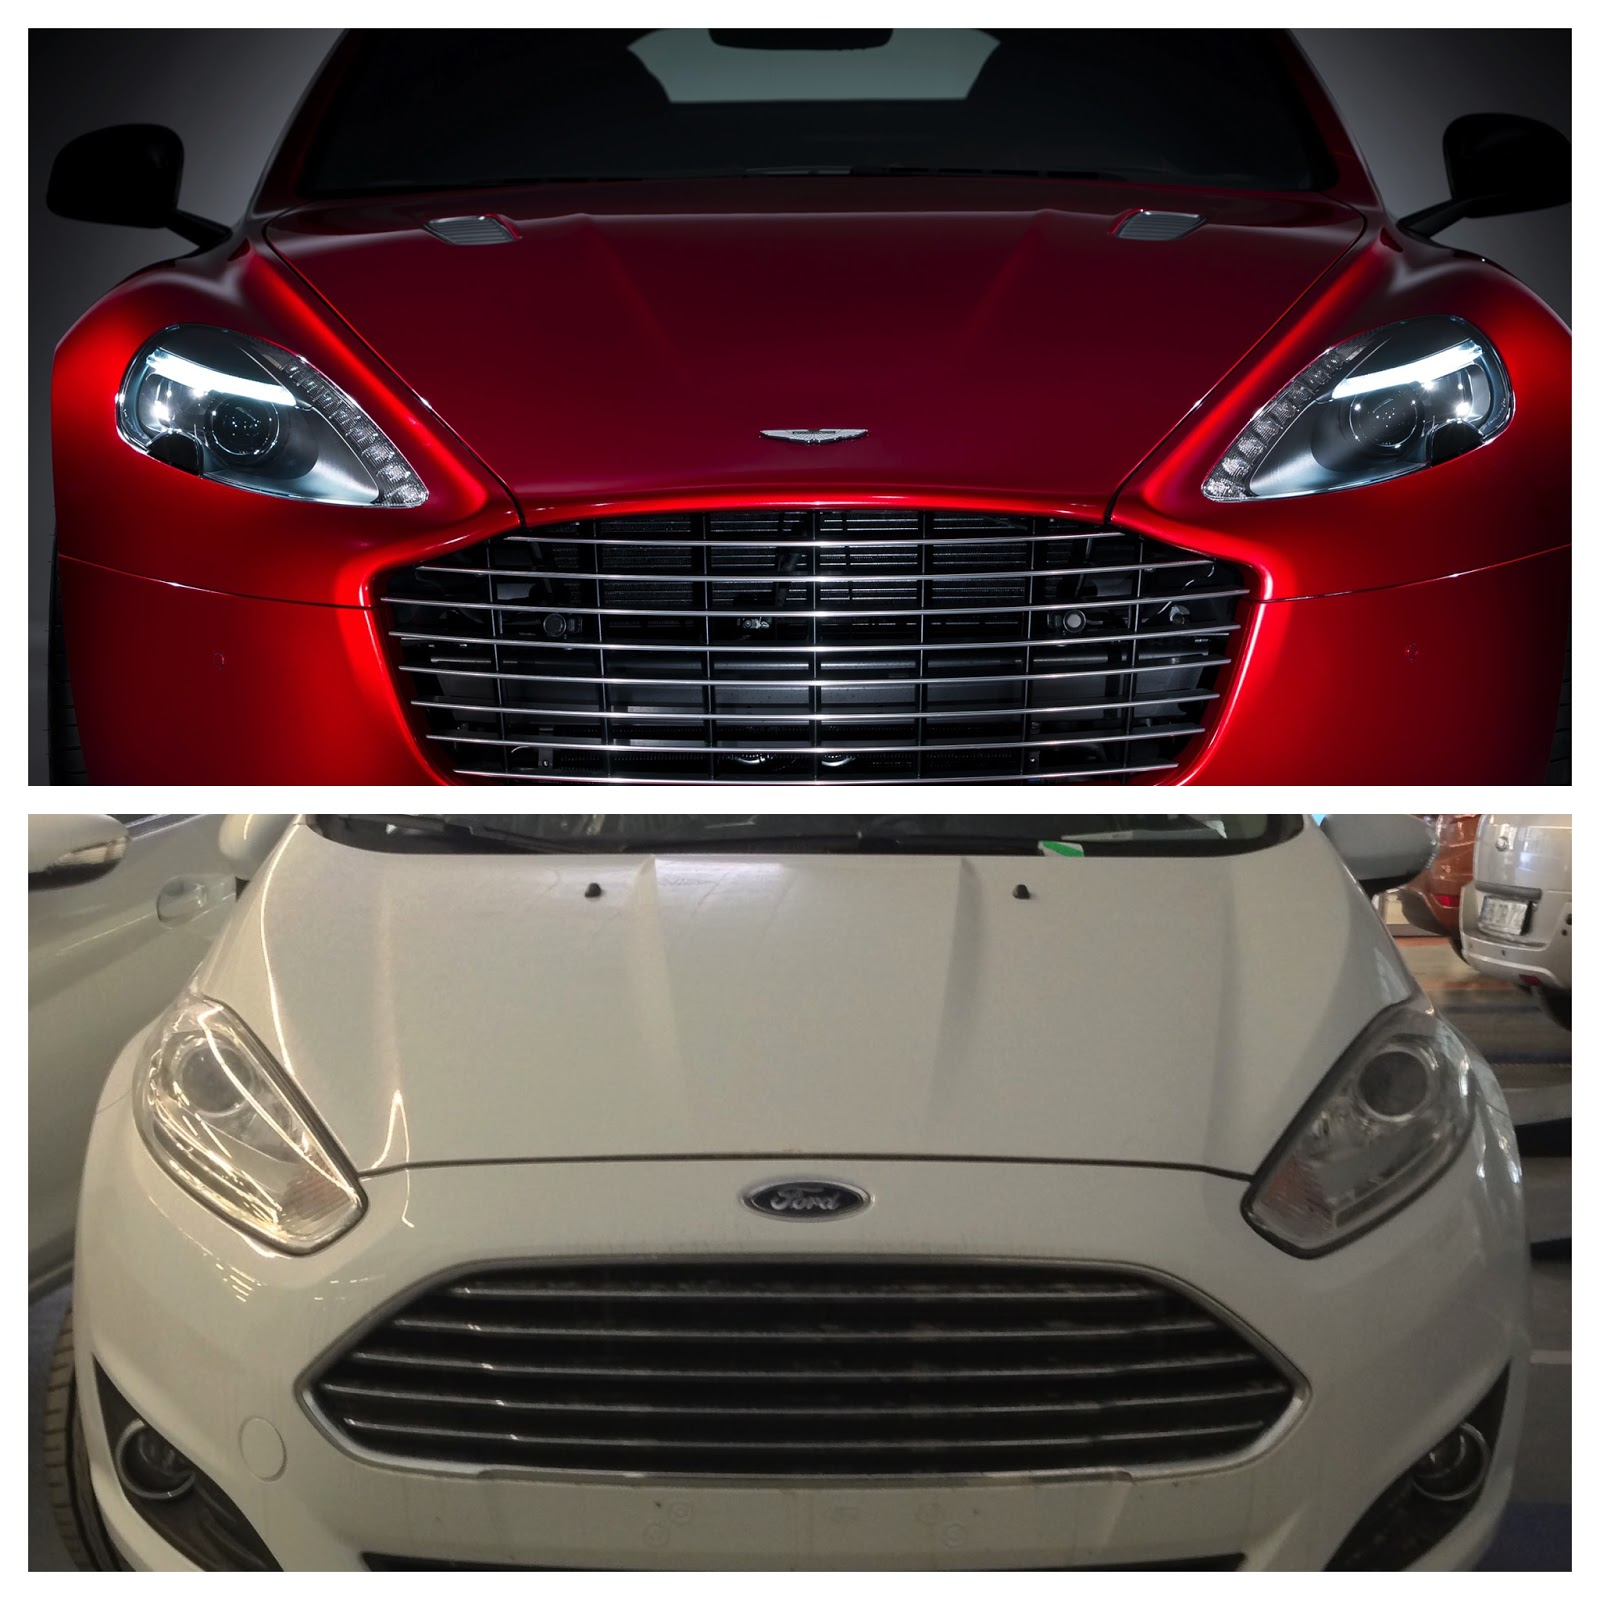 By The Way Aston Martin Is Not Owned Ford Anymore If You Don T Believe Me Just Check Wikipedia Page For